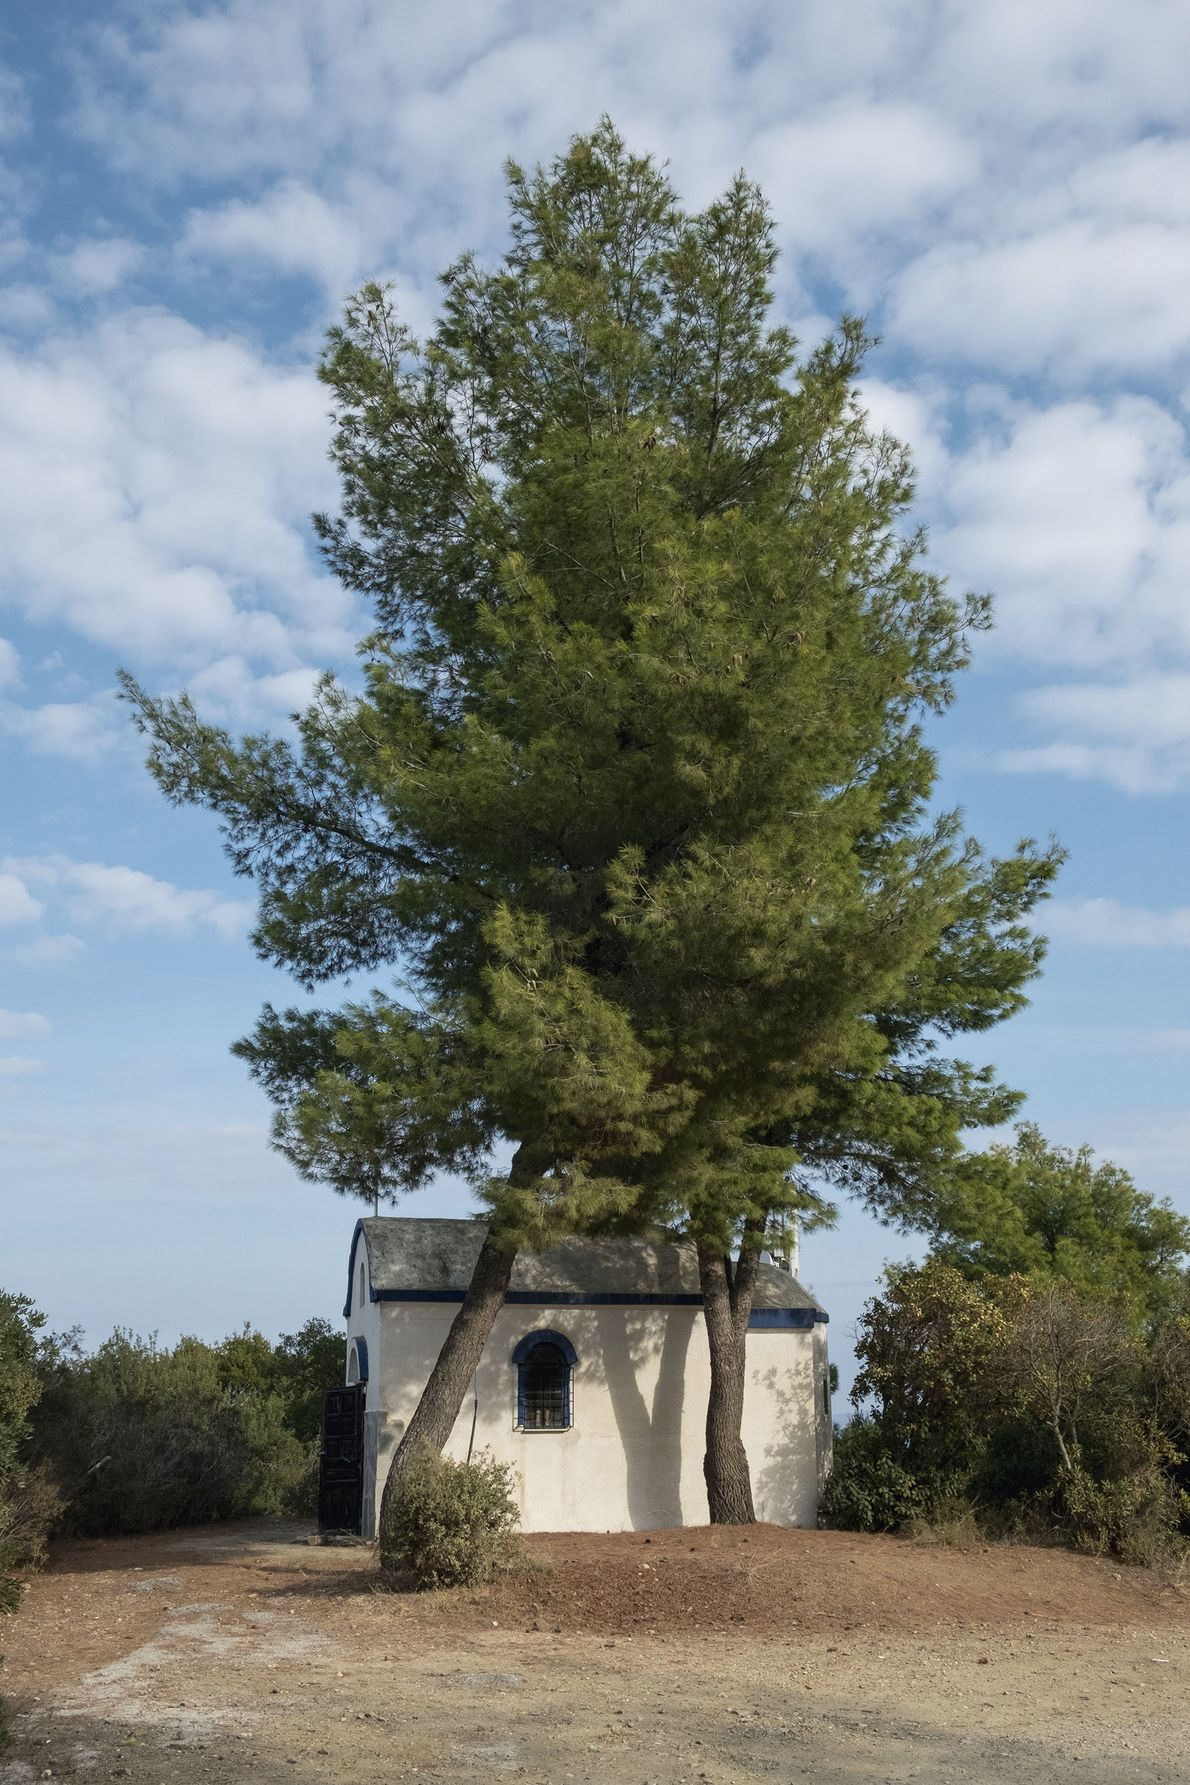 A chapel in the shade of trees